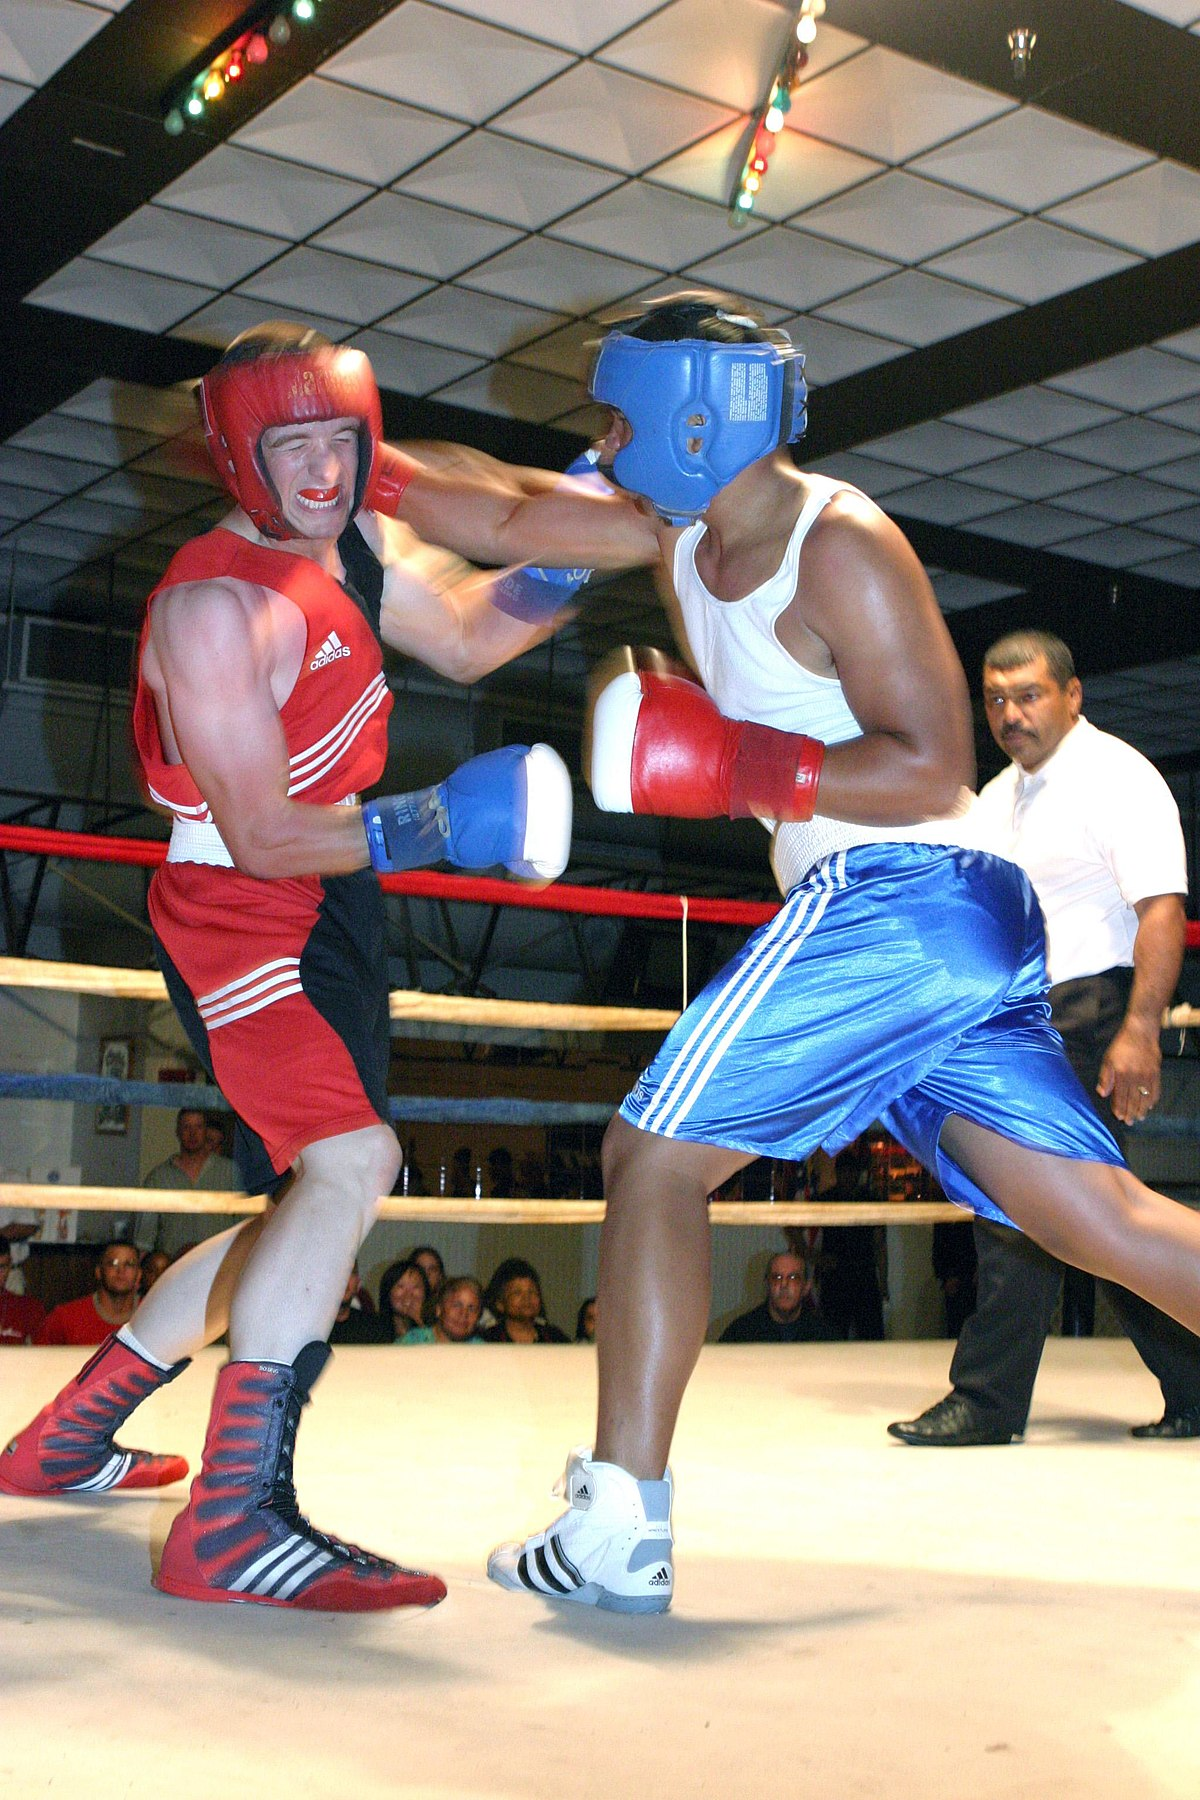 amateur Boxing and professional weight classes